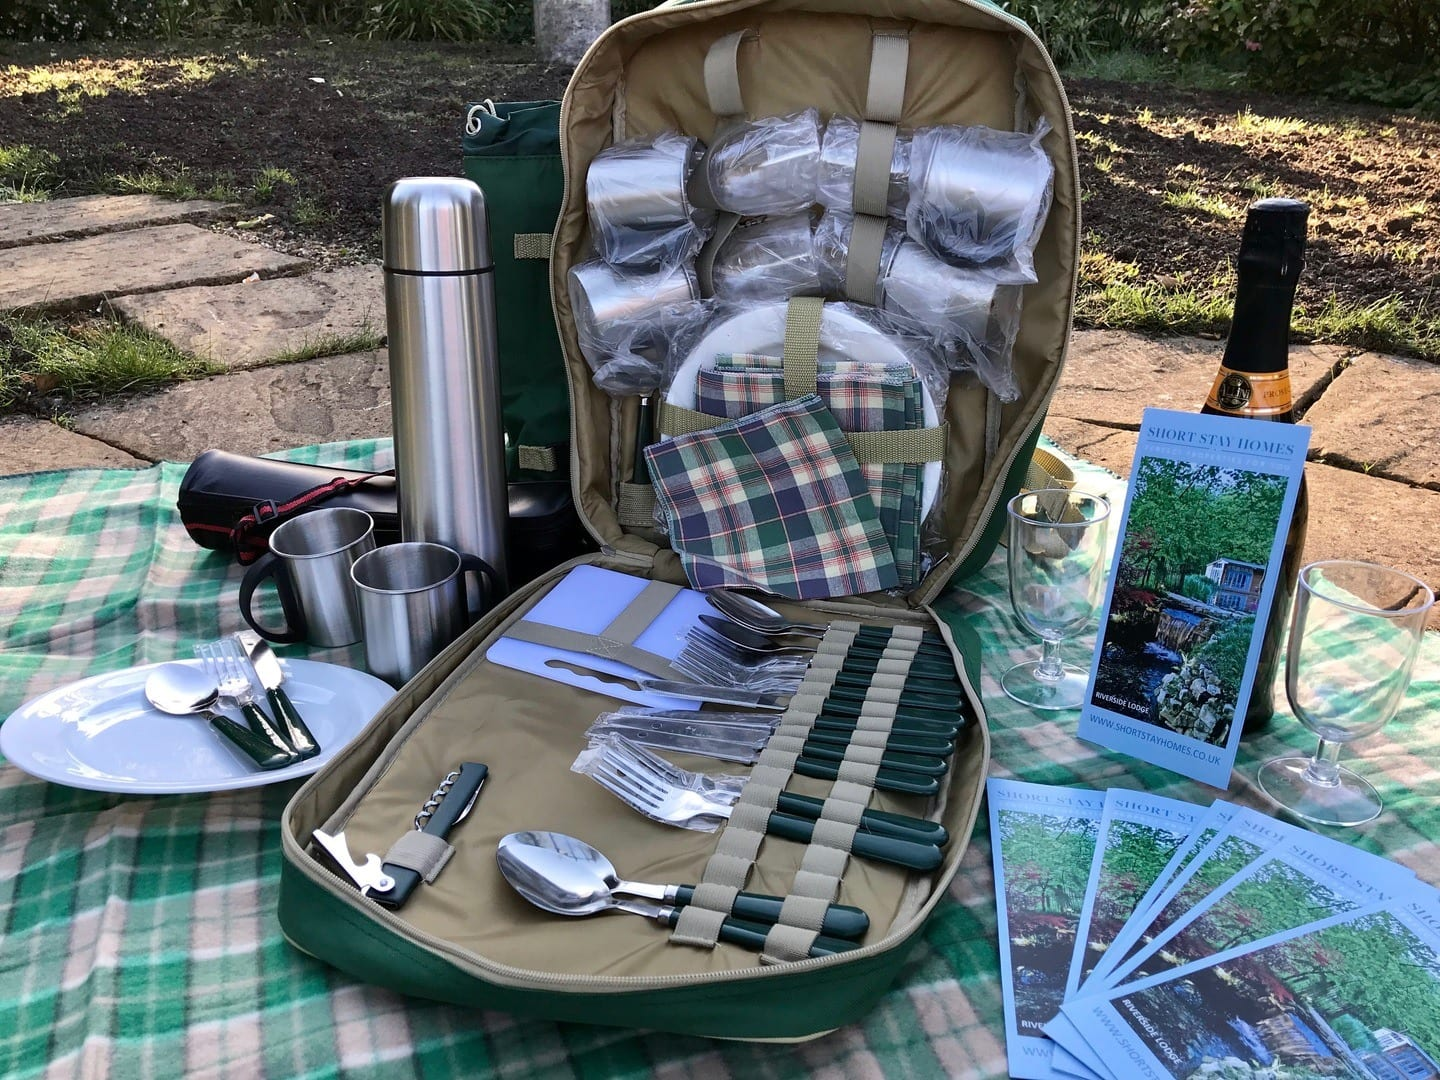 go for a beautiful walk around the New forest and take a picnic with you, well equipped picnic bag supplied for you to enjoy